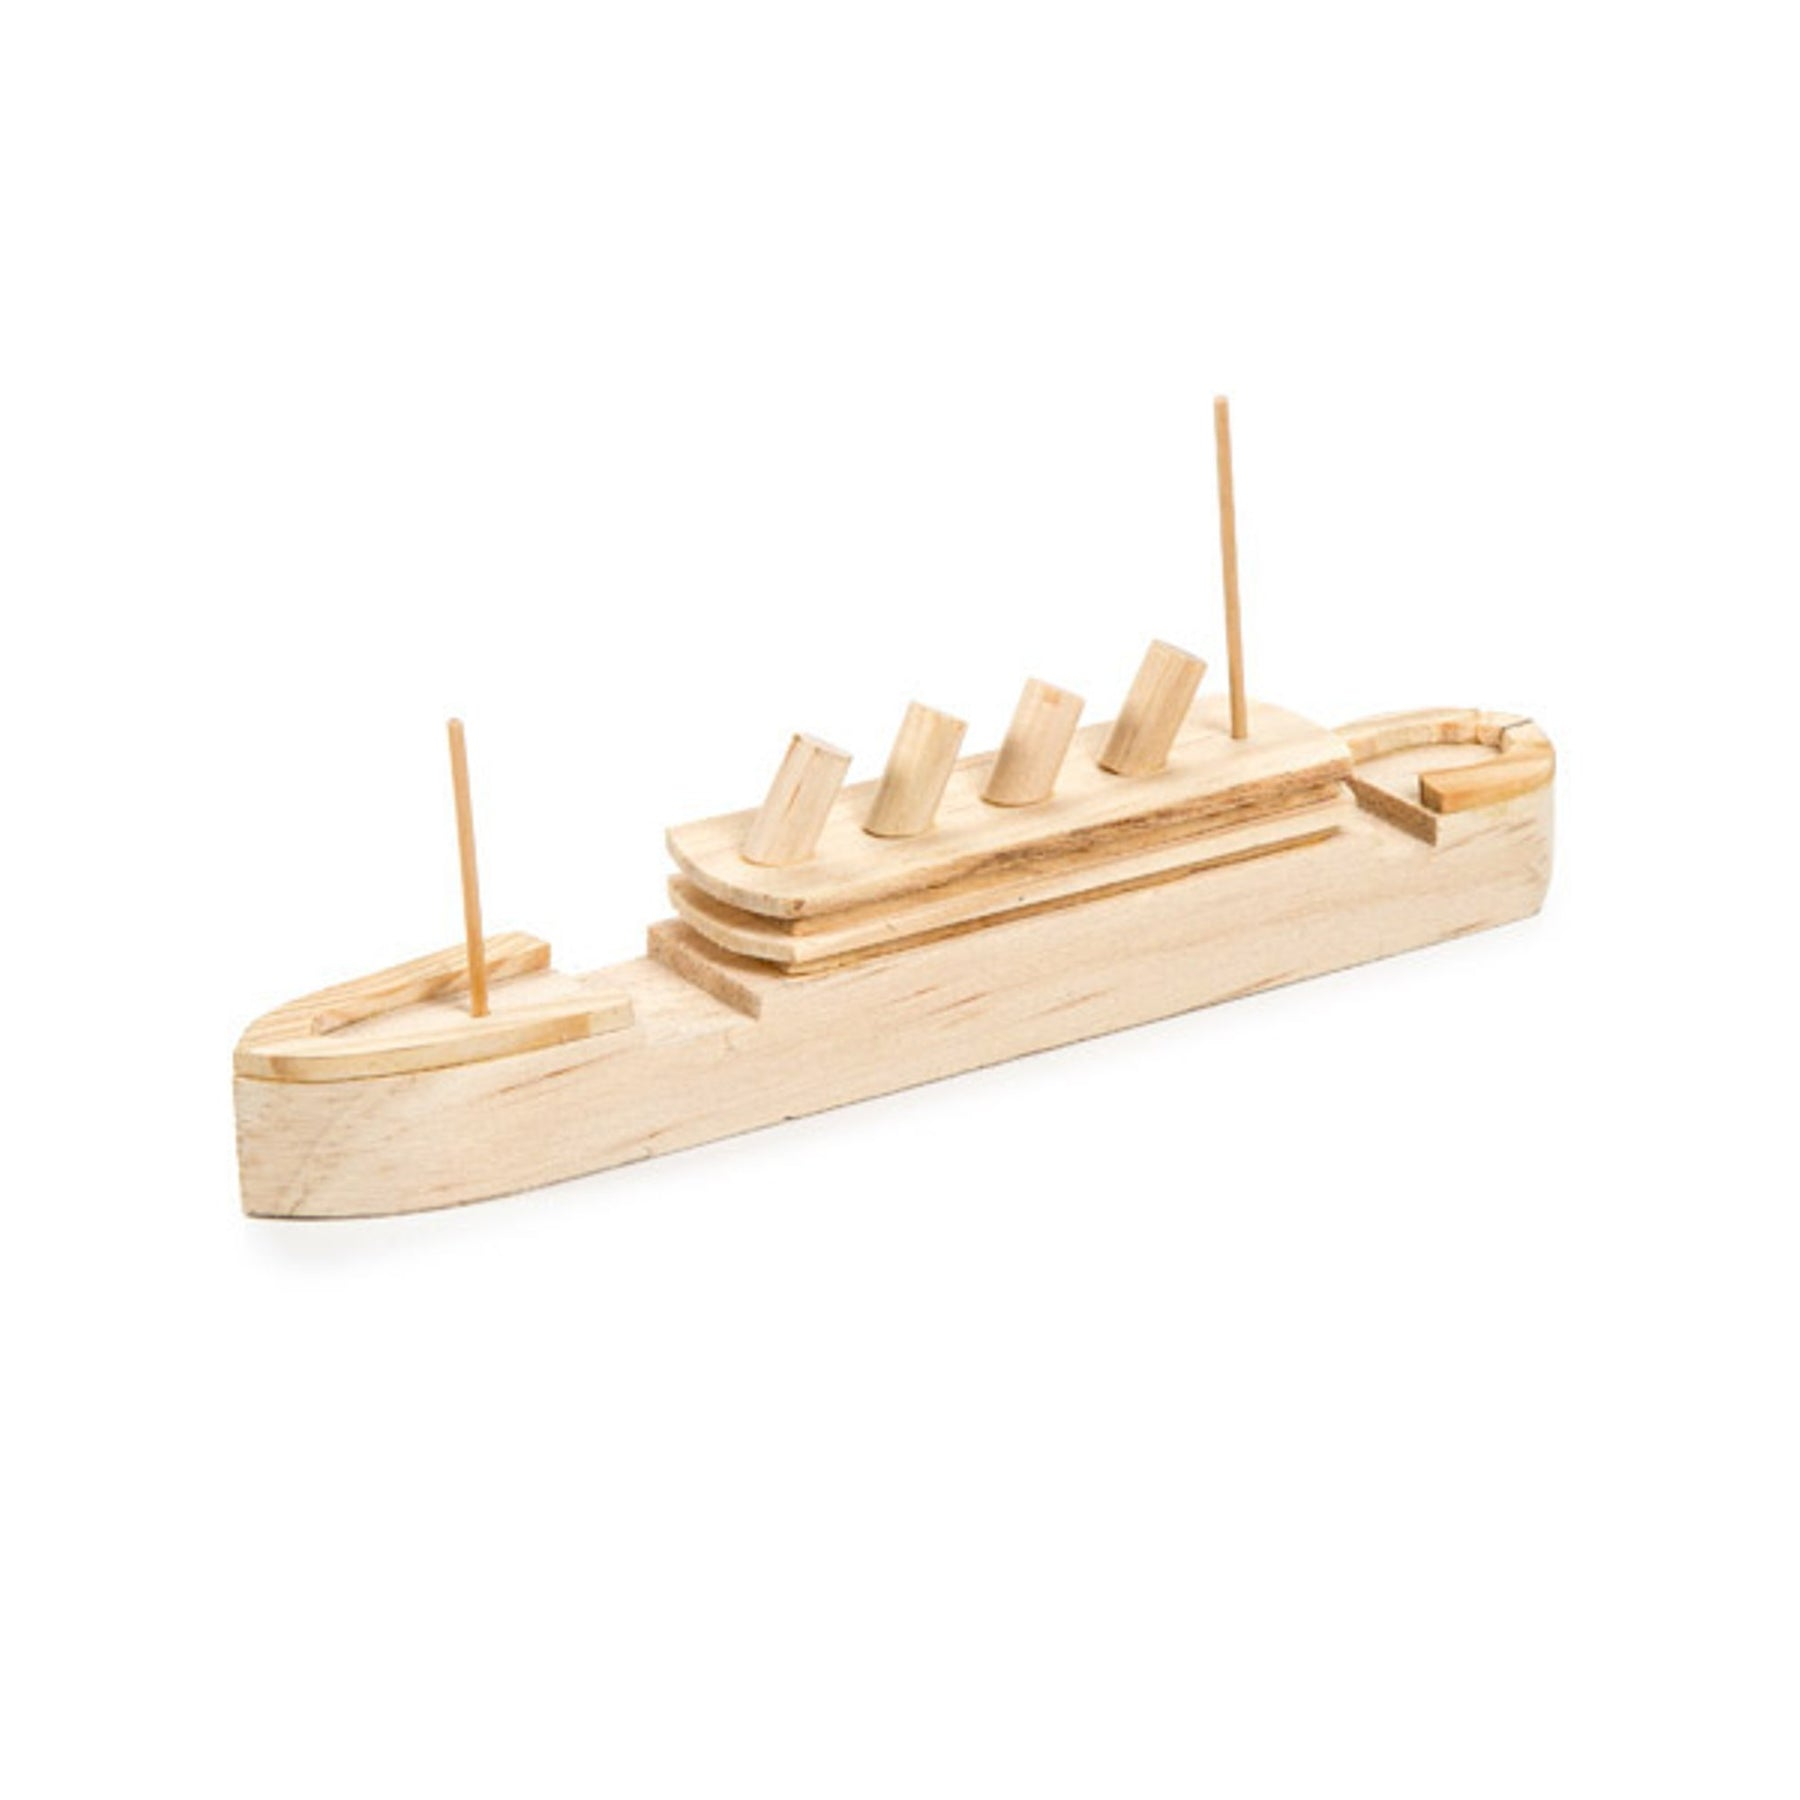 New - Titanic Wood Model Kit